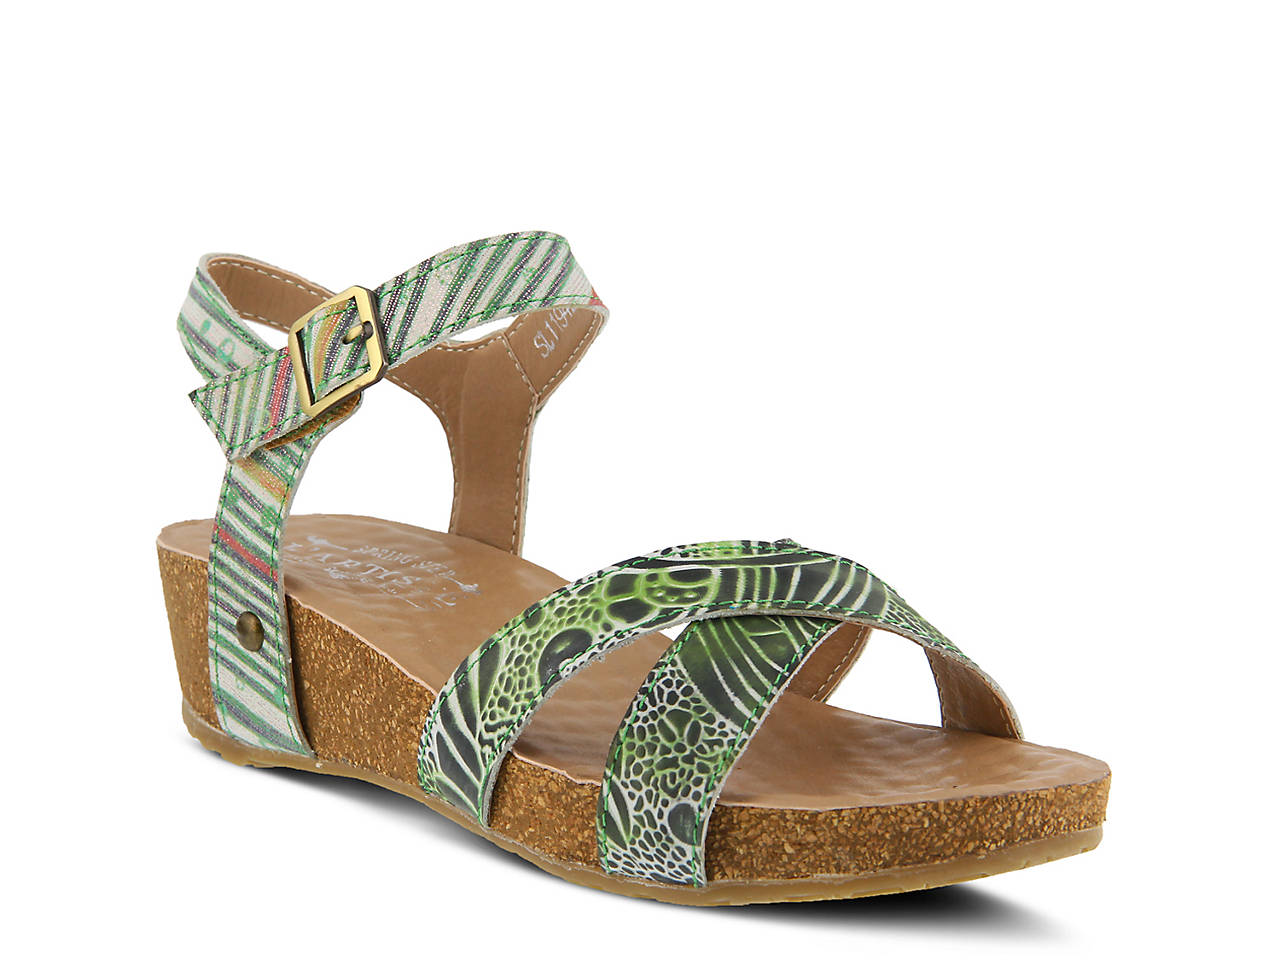 L'Artiste by Spring Step Vella Sandals 5W3jHgyt21